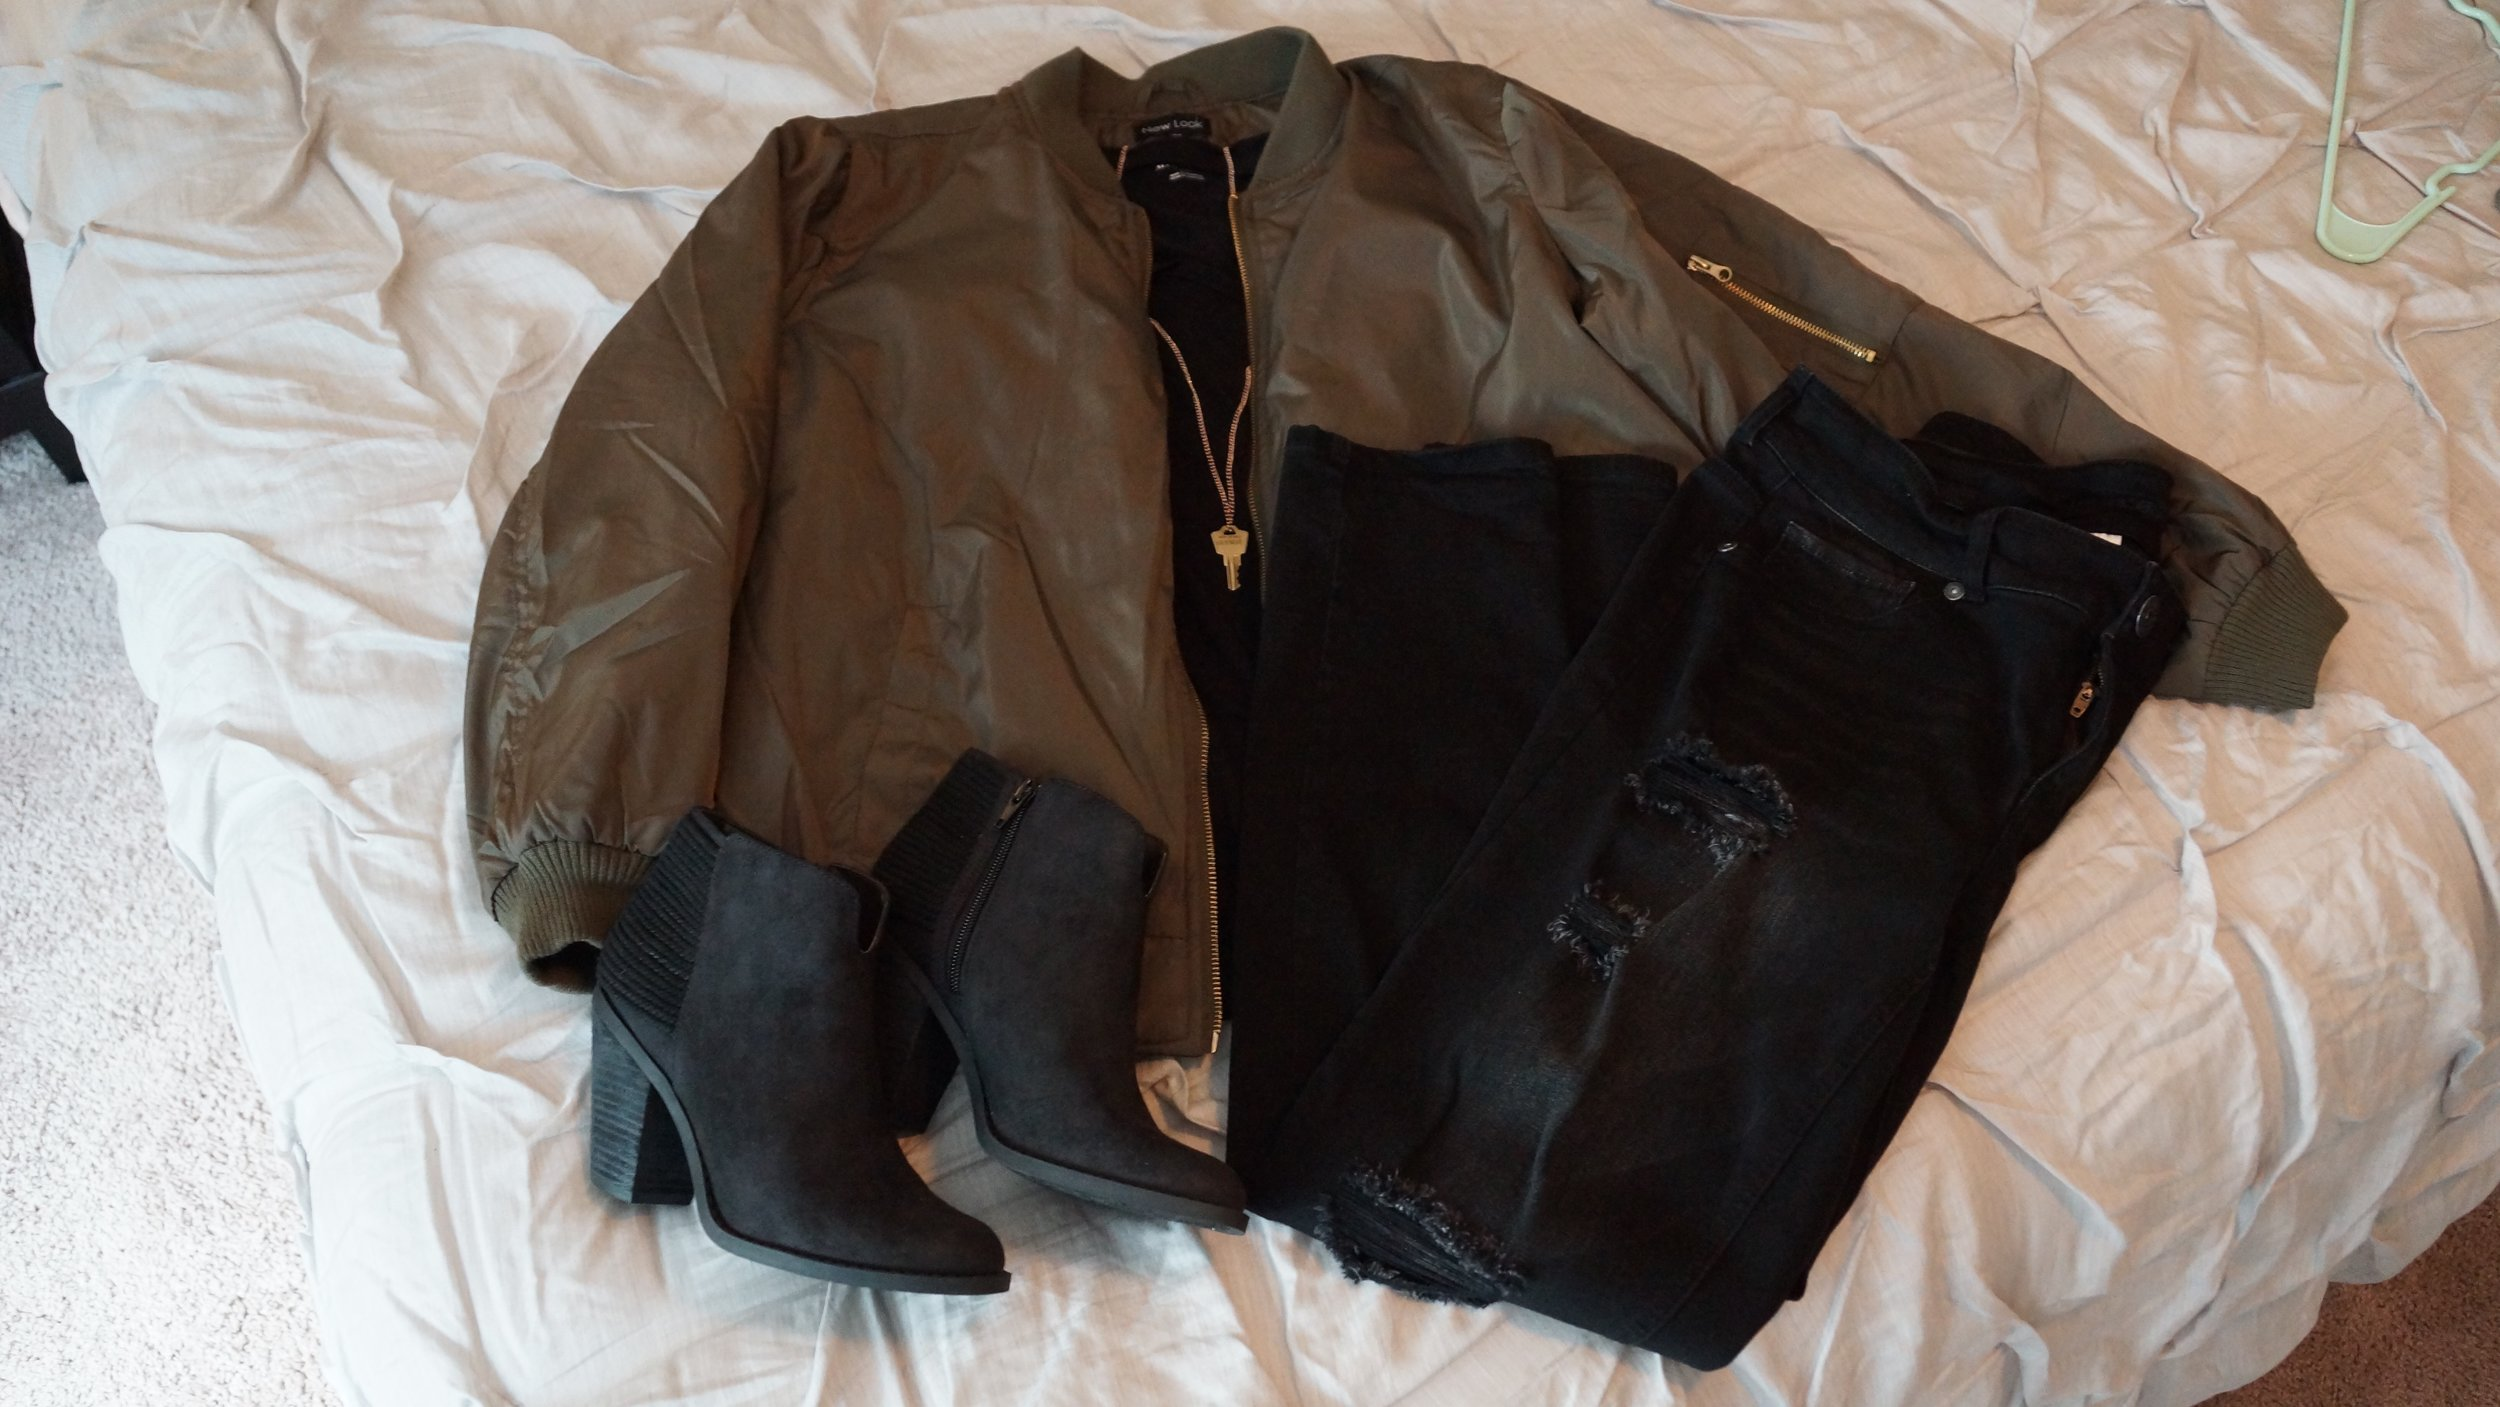 Black tee (Target), bomber jacket (Ross), jeggings (Maurices), black booties (Ross), and my favorite accessory, The Giving Keys necklace (a gift from my sister)